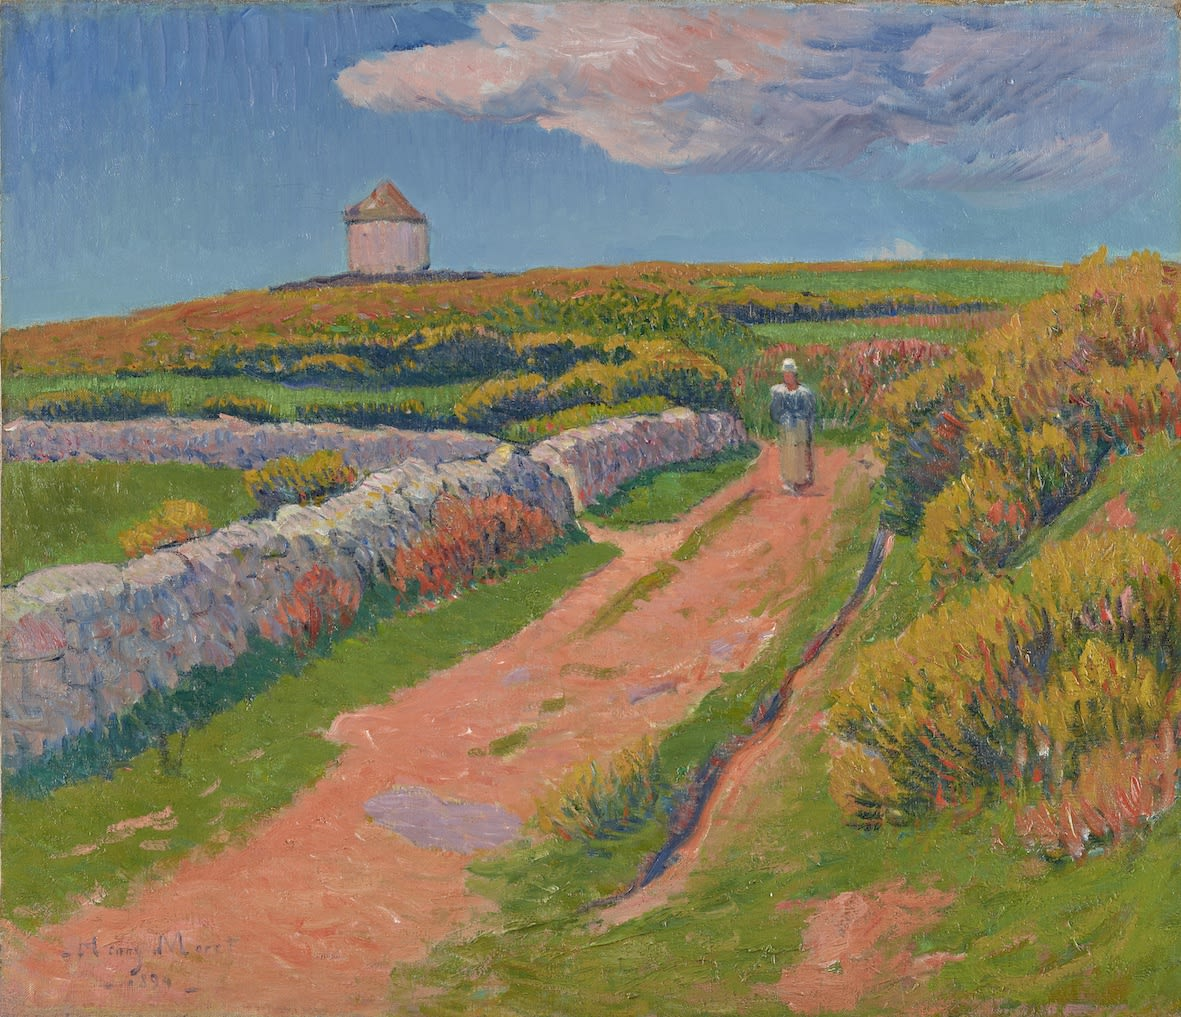 <span class=&#34;link fancybox-details-link&#34;><a href=&#34;/exhibitions/6/works/artworks_standalone9411/&#34;>View Detail Page</a></span><div class=&#34;signed_and_dated&#34;>Signed and dated lower left Henry Moret 1894</div>